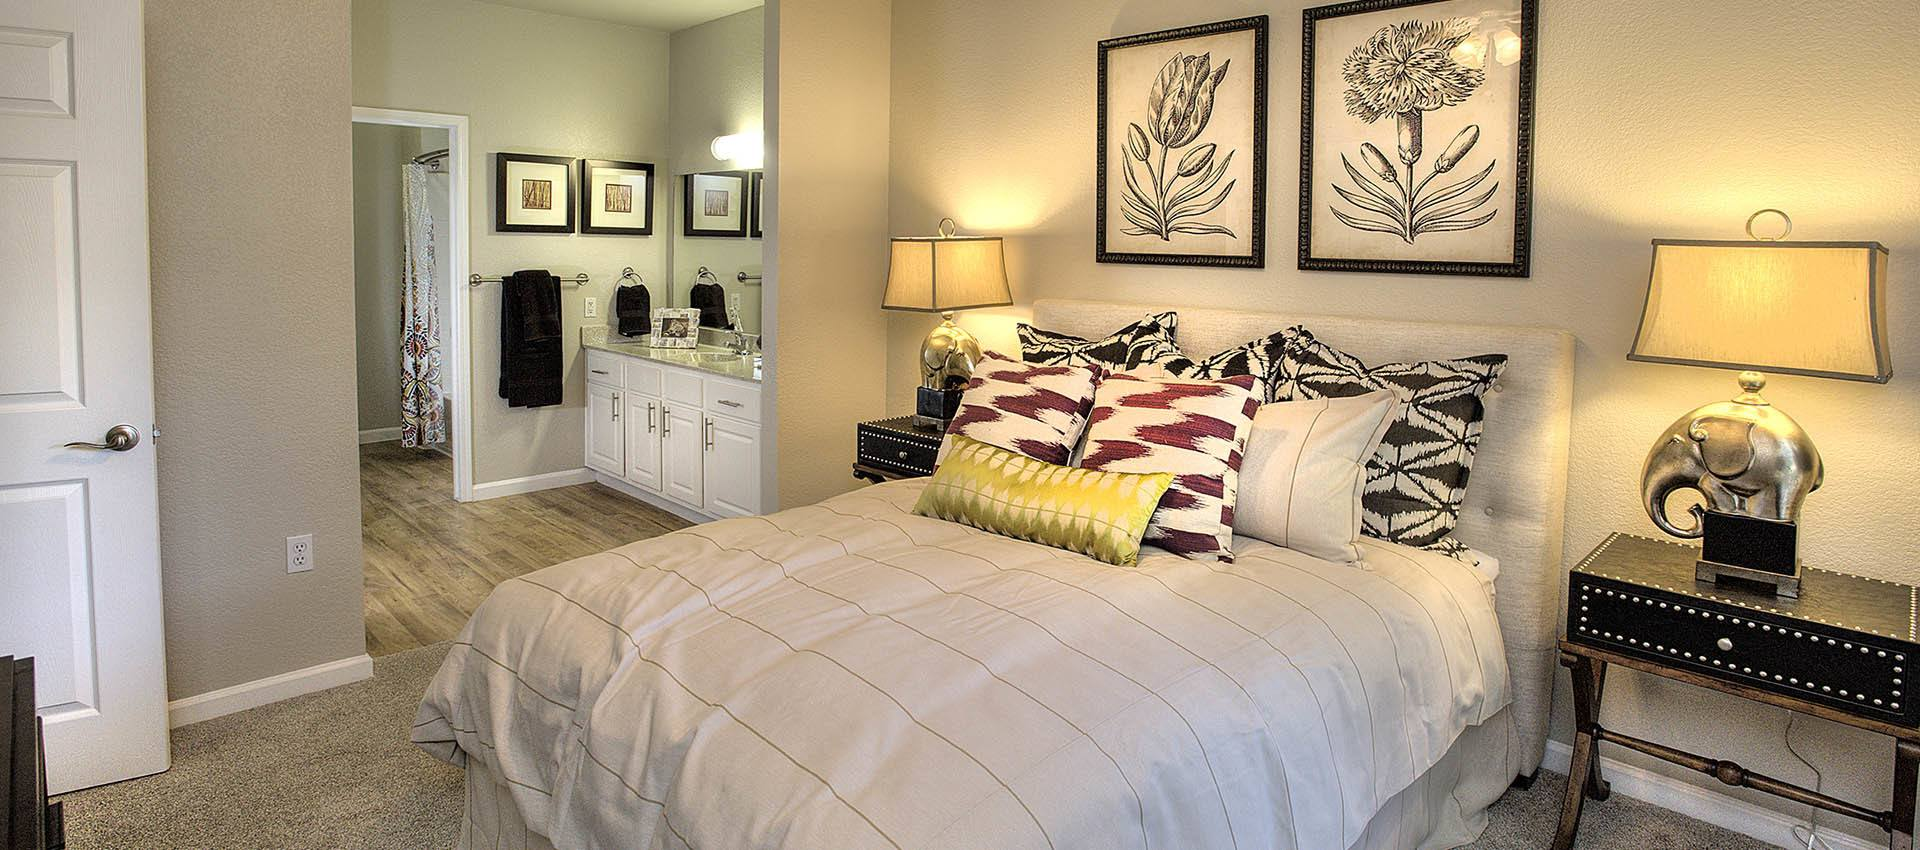 Spacious Bedroom at River Oaks Apartment Homes in Vacaville